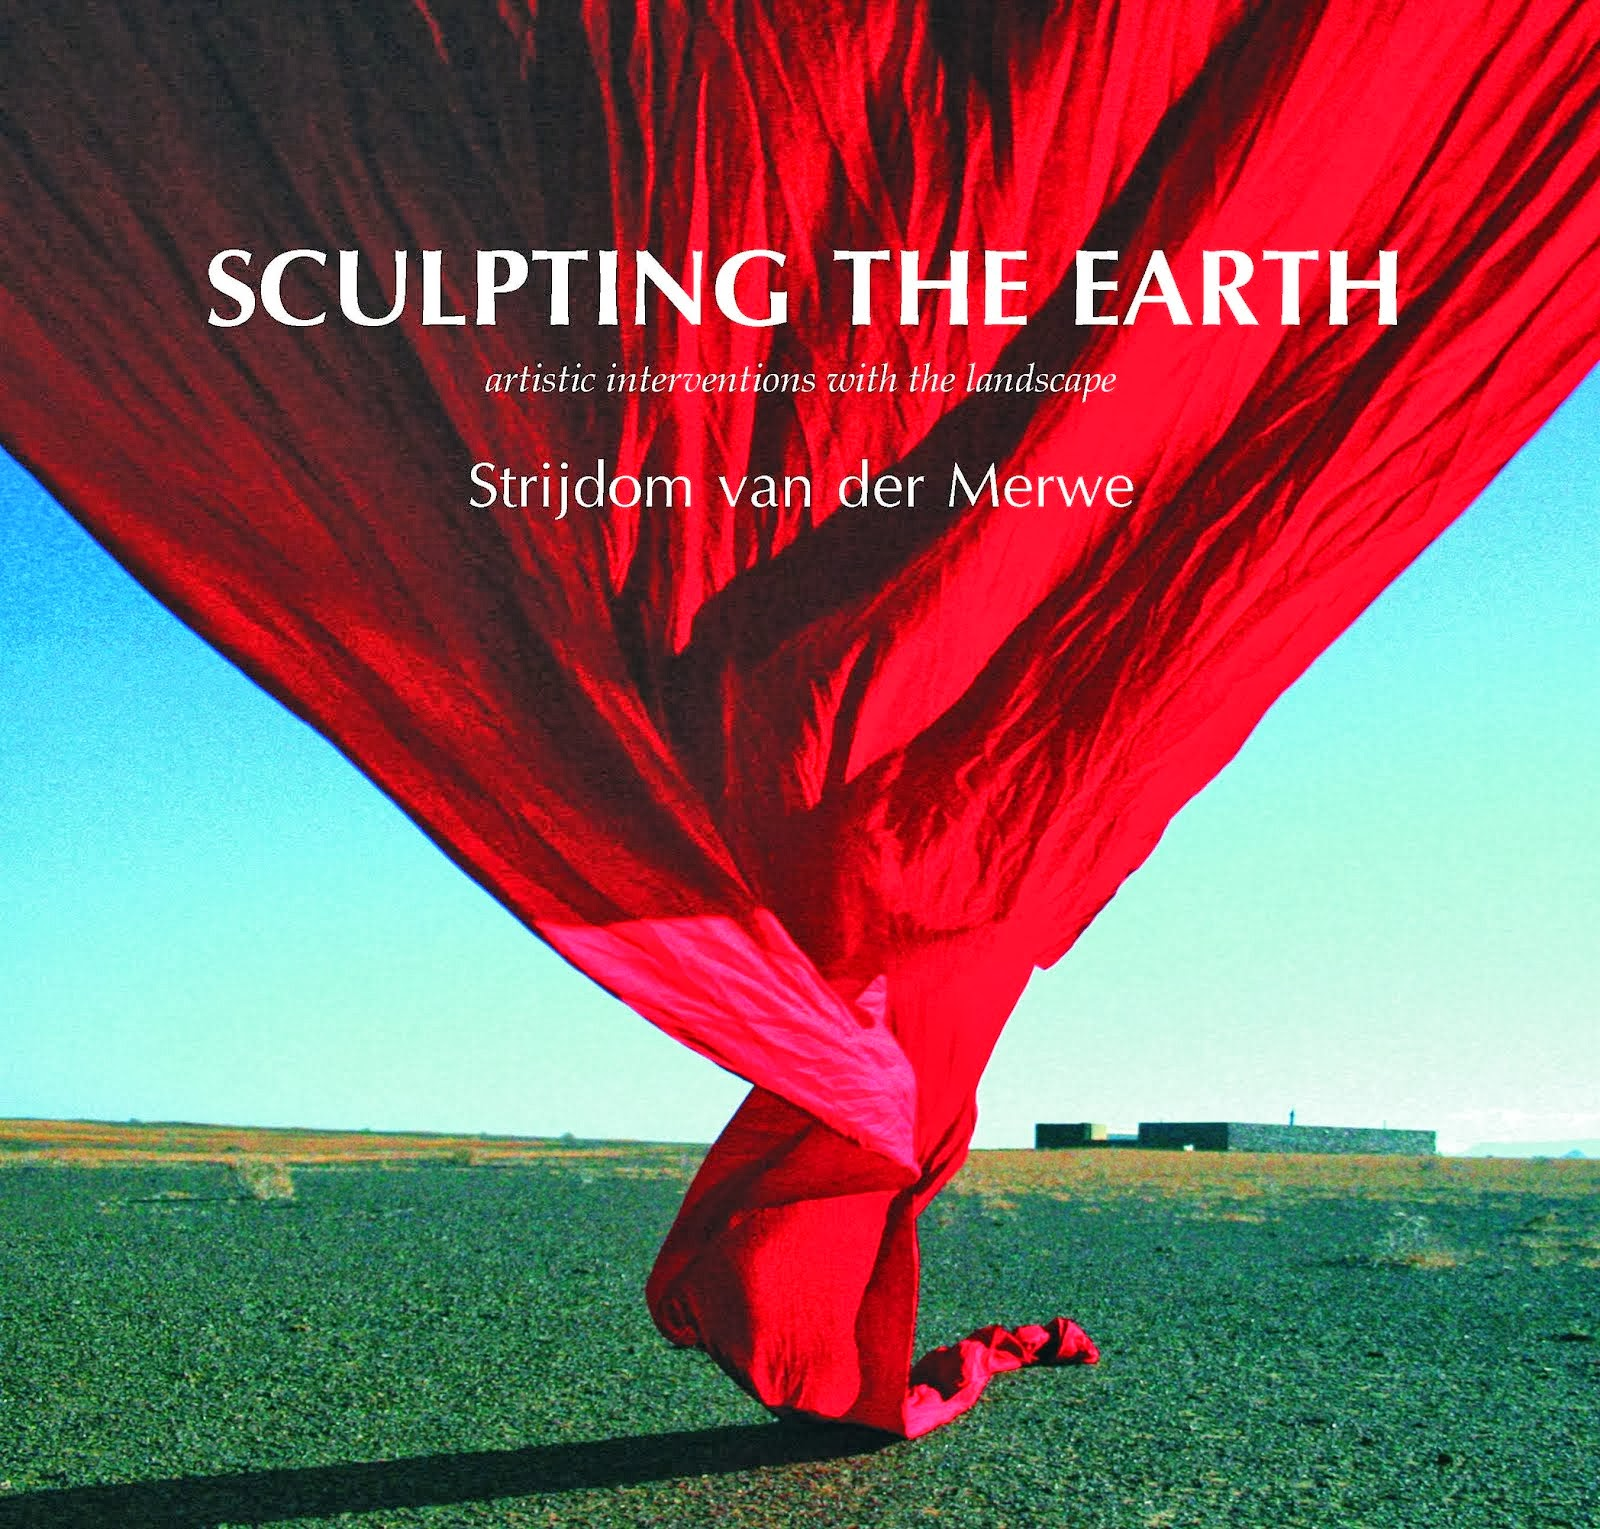 Sculpting the earth: Strijdom van der Merwe